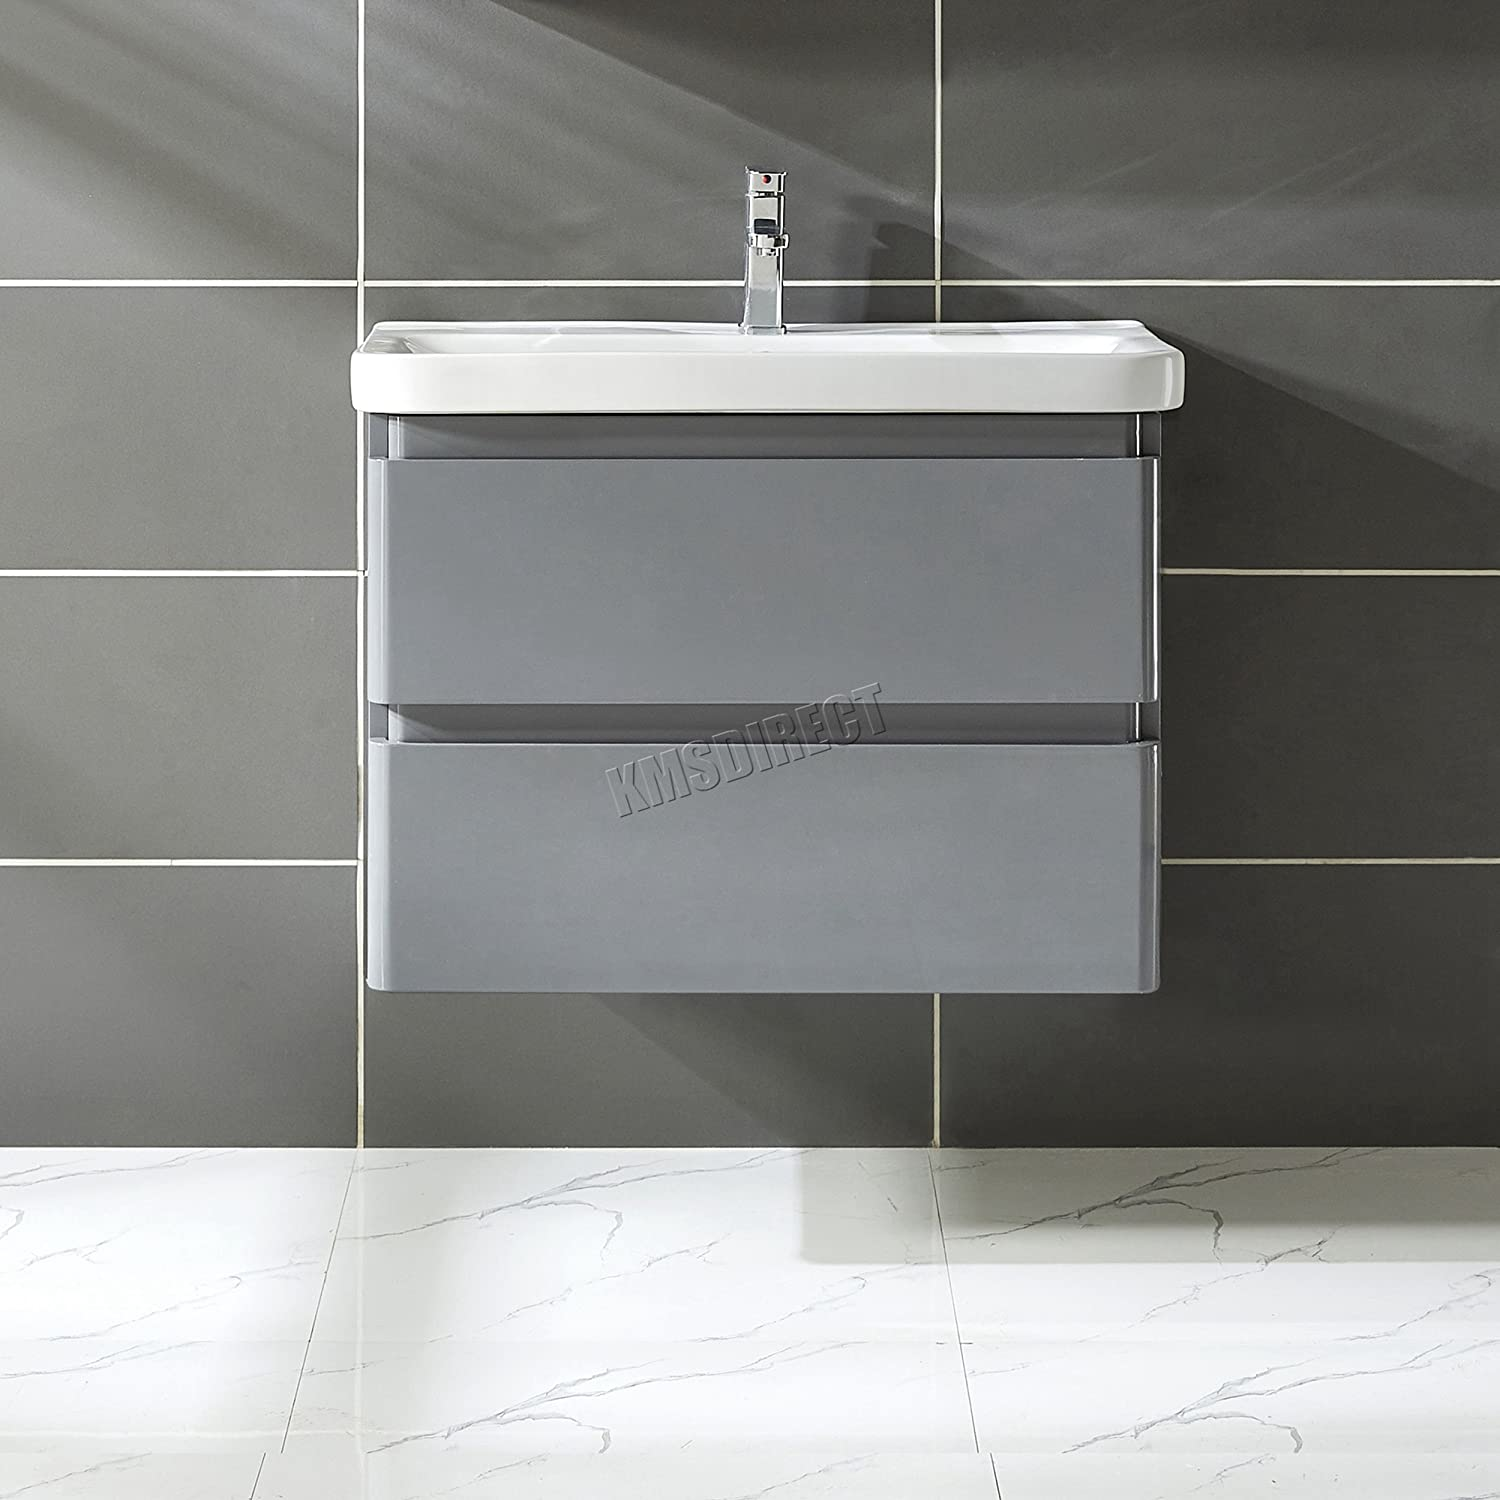 WestWood Modern Vanity Unit 80CM MDF High Gloss Wall Hung With 2 drawers Basin Sink Bathroom Cloakroom Cabinet Storage Cupboard Furniture VU02 Grey KMS